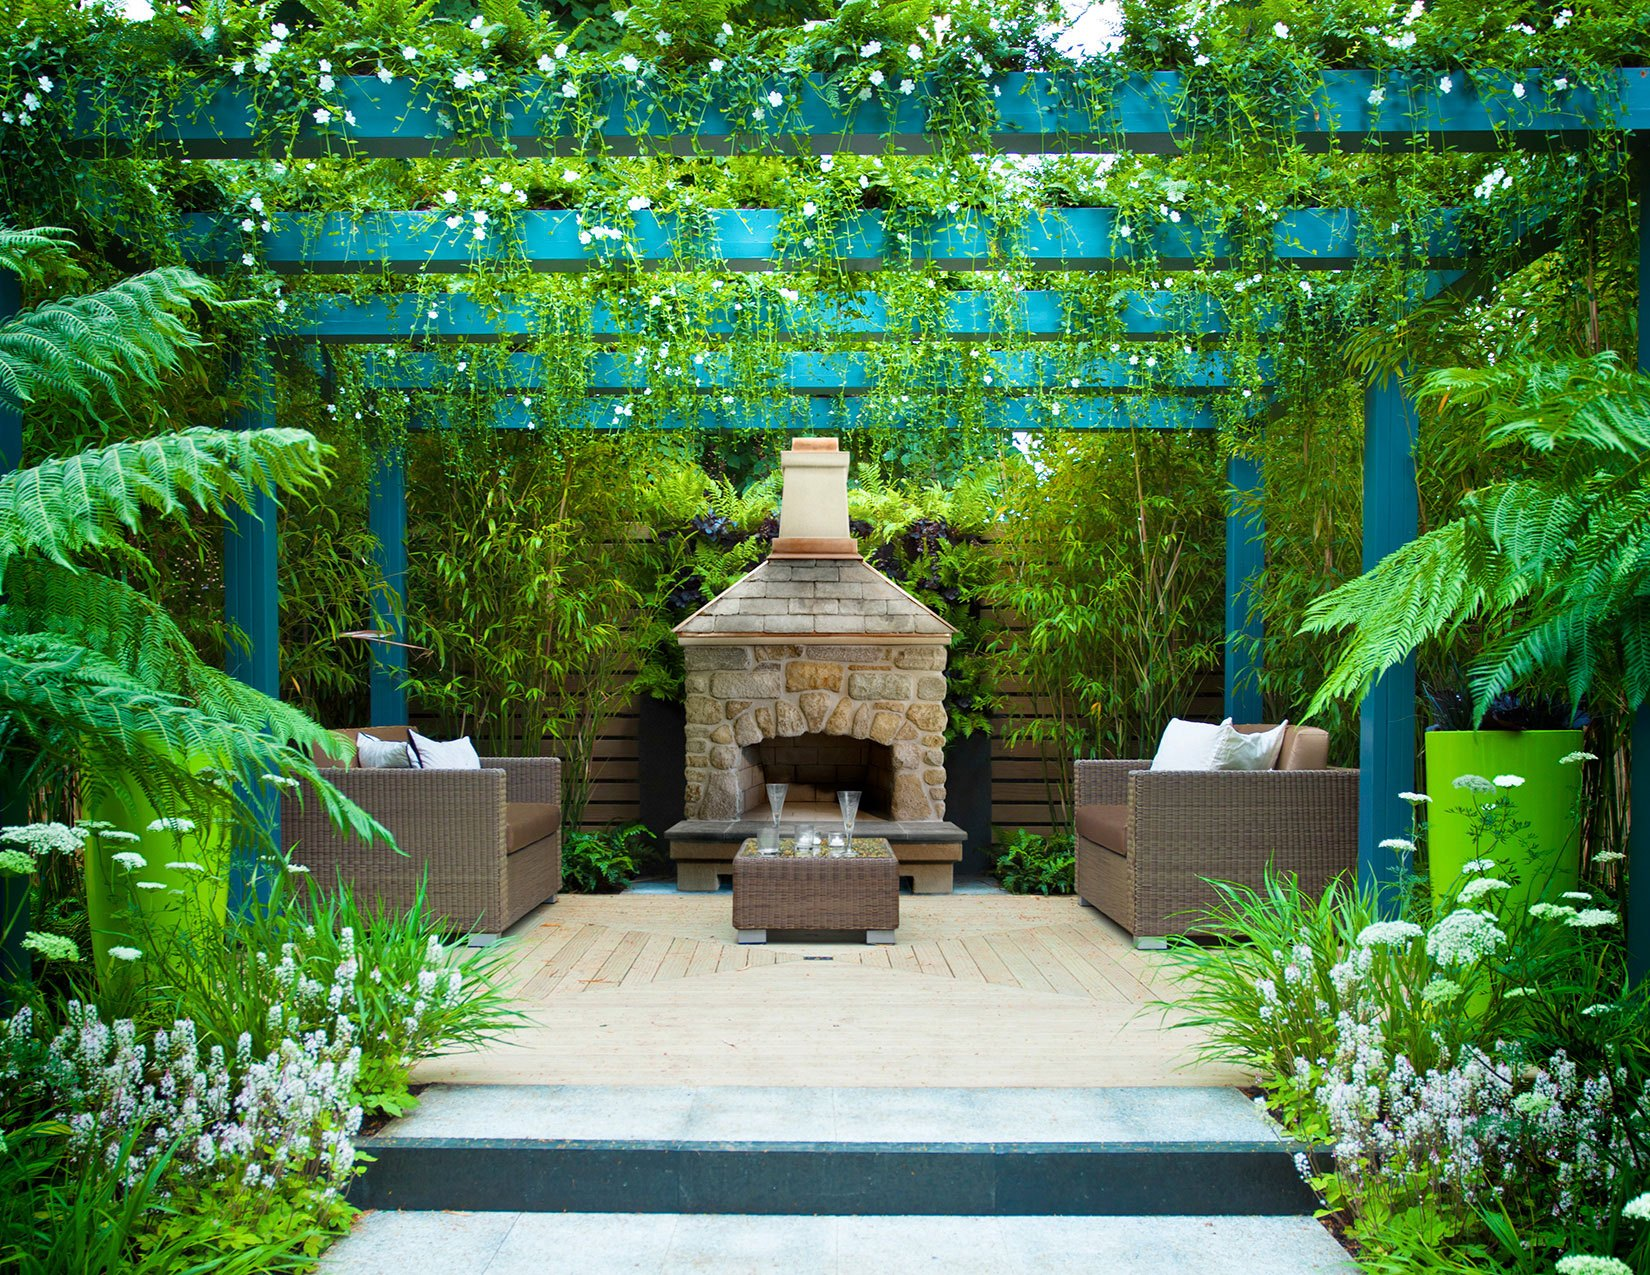 An outdoor photo of tropical environment with fireplace